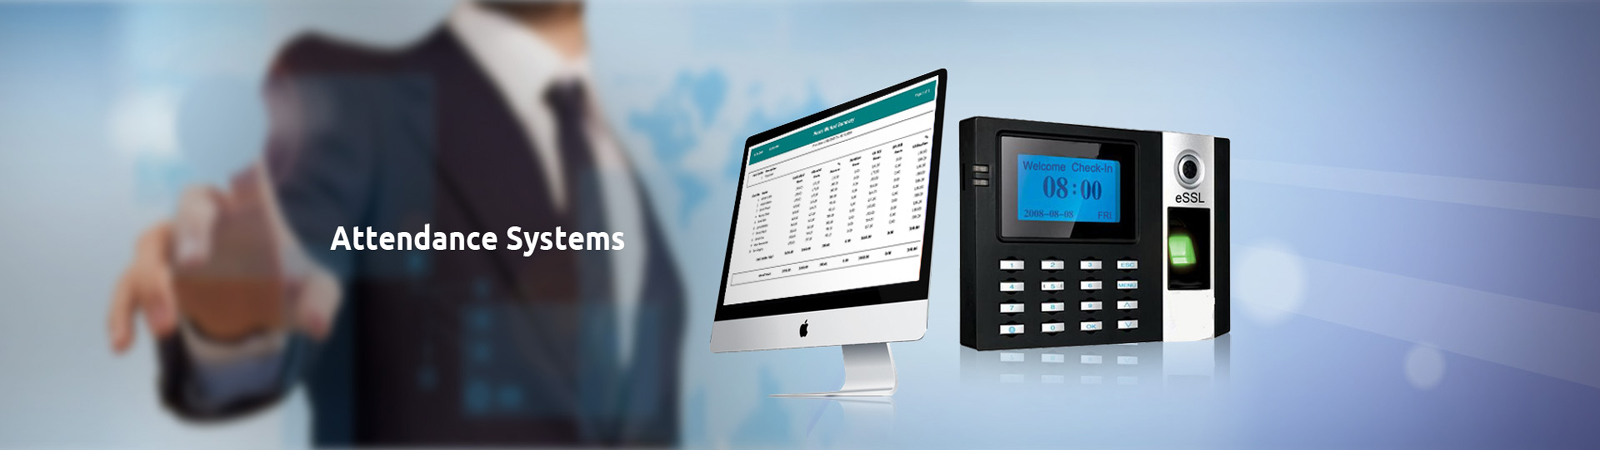 Pionec Electronic System Attendance System Attendance